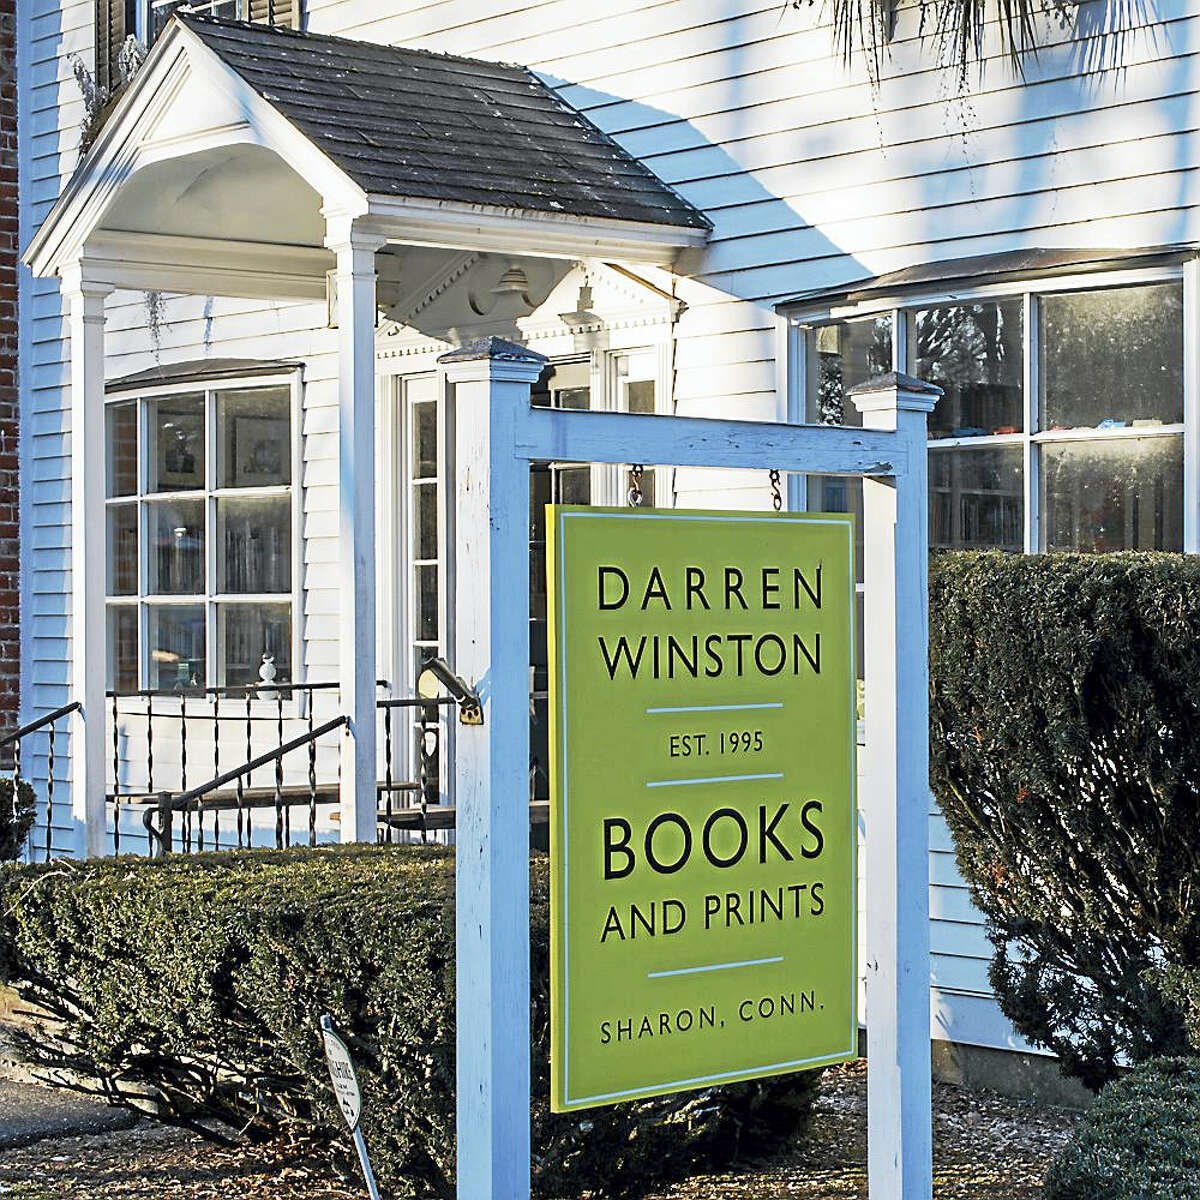 Photo by Debra Bilow A sign outside the book and print shop in Sharon.